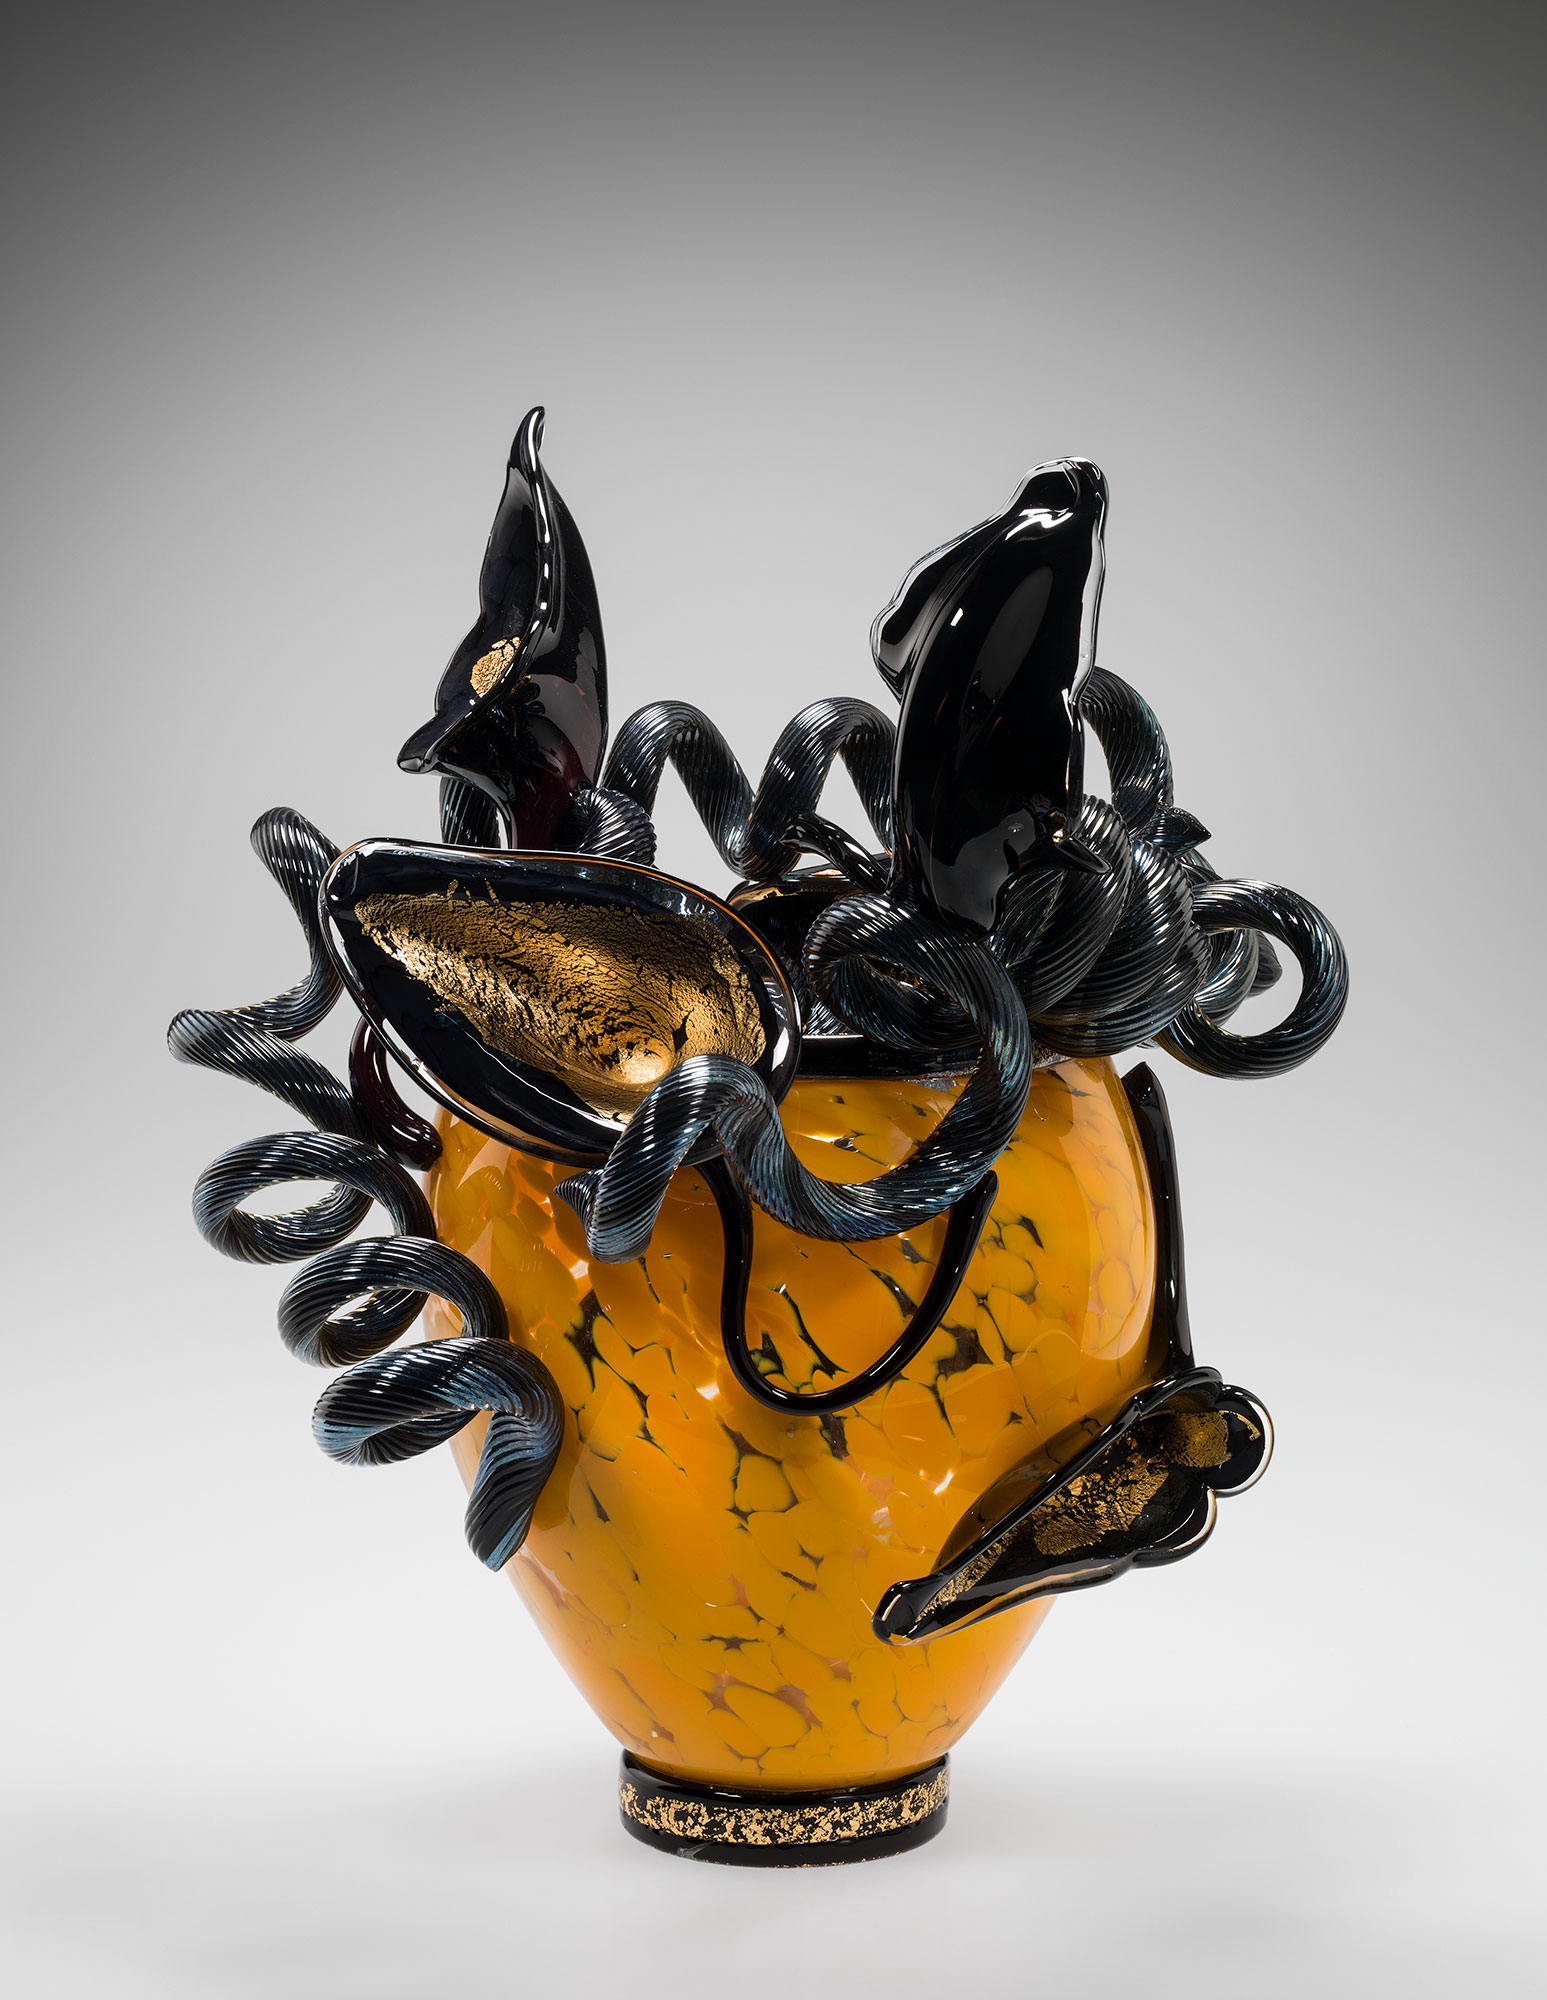 Yellow-orange mottled glass vase with black and gold flower-like structures on top